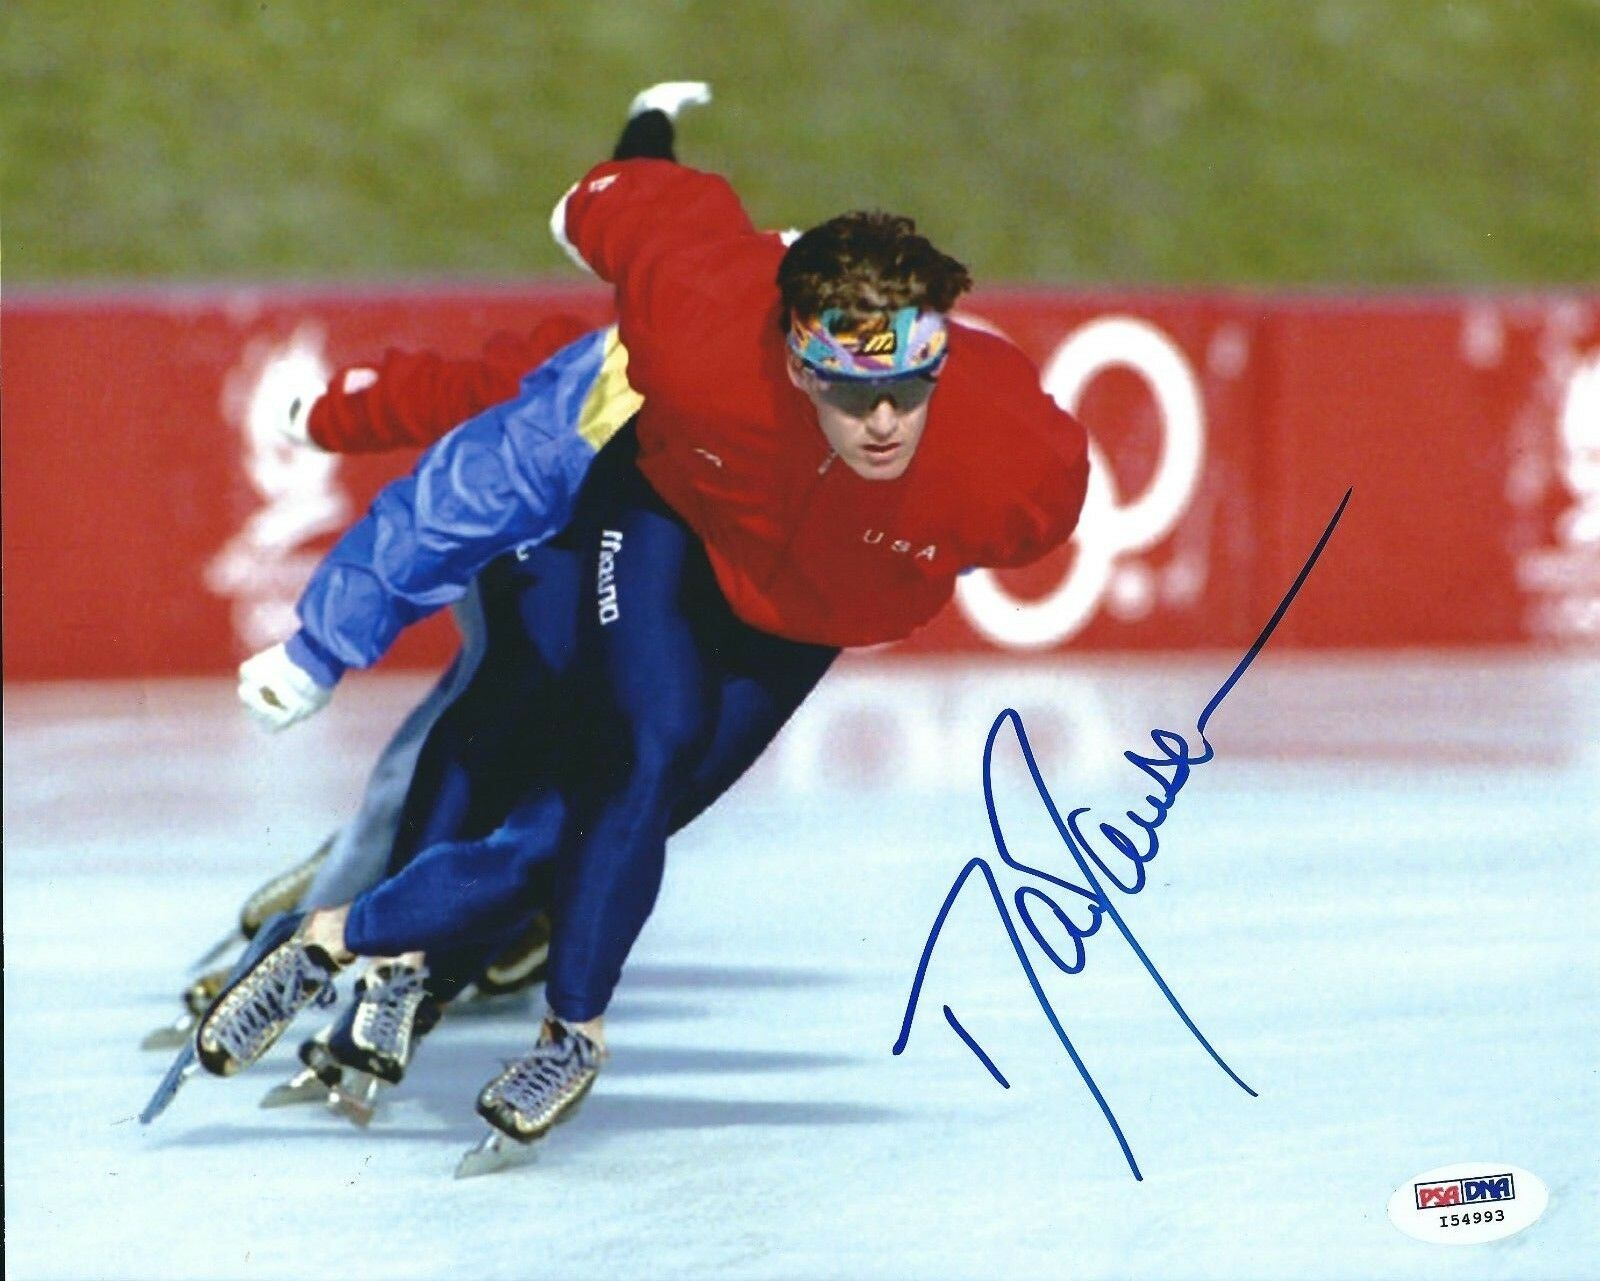 Dan Johnson Signed Olympic Ice Skating 8x10 Photo PSA I54993